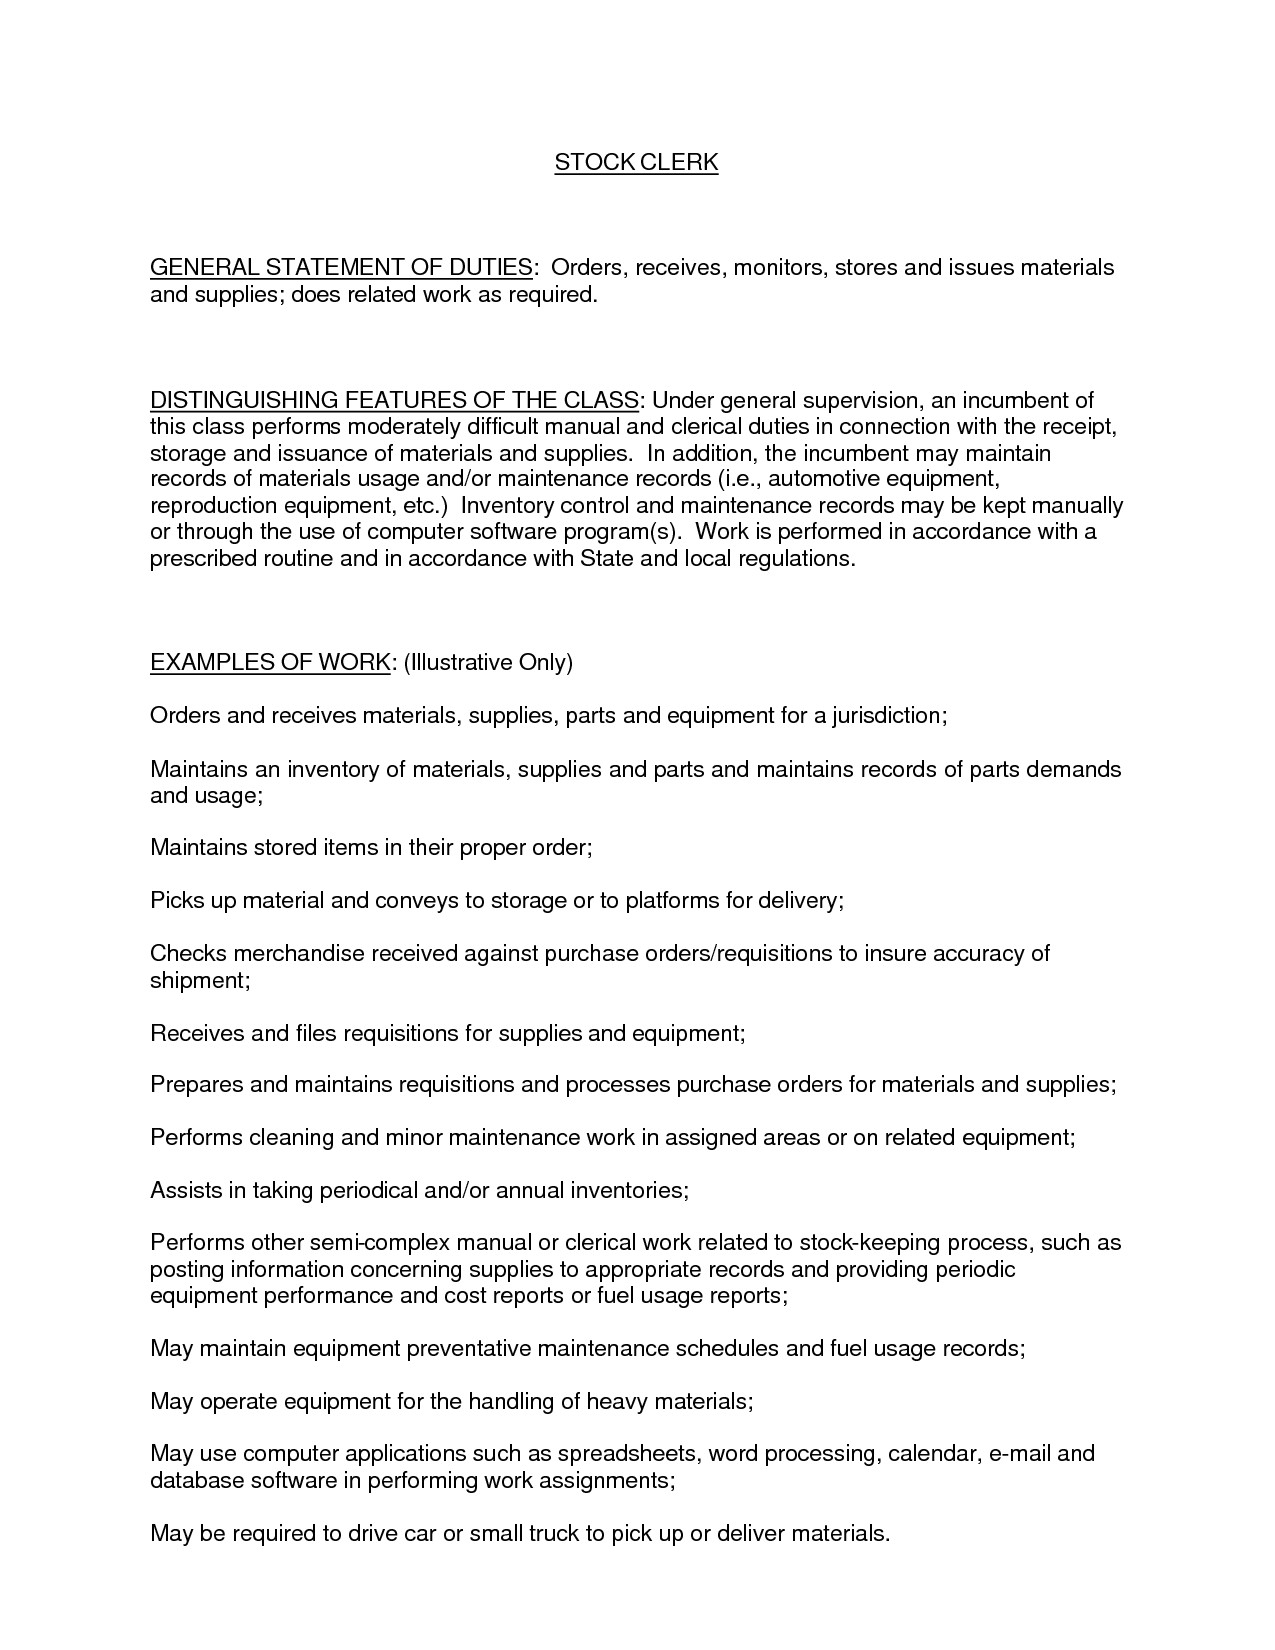 Sample Resume for Inventory Clerk Inventory Clerk Job Description for Resume Annecarolynbird